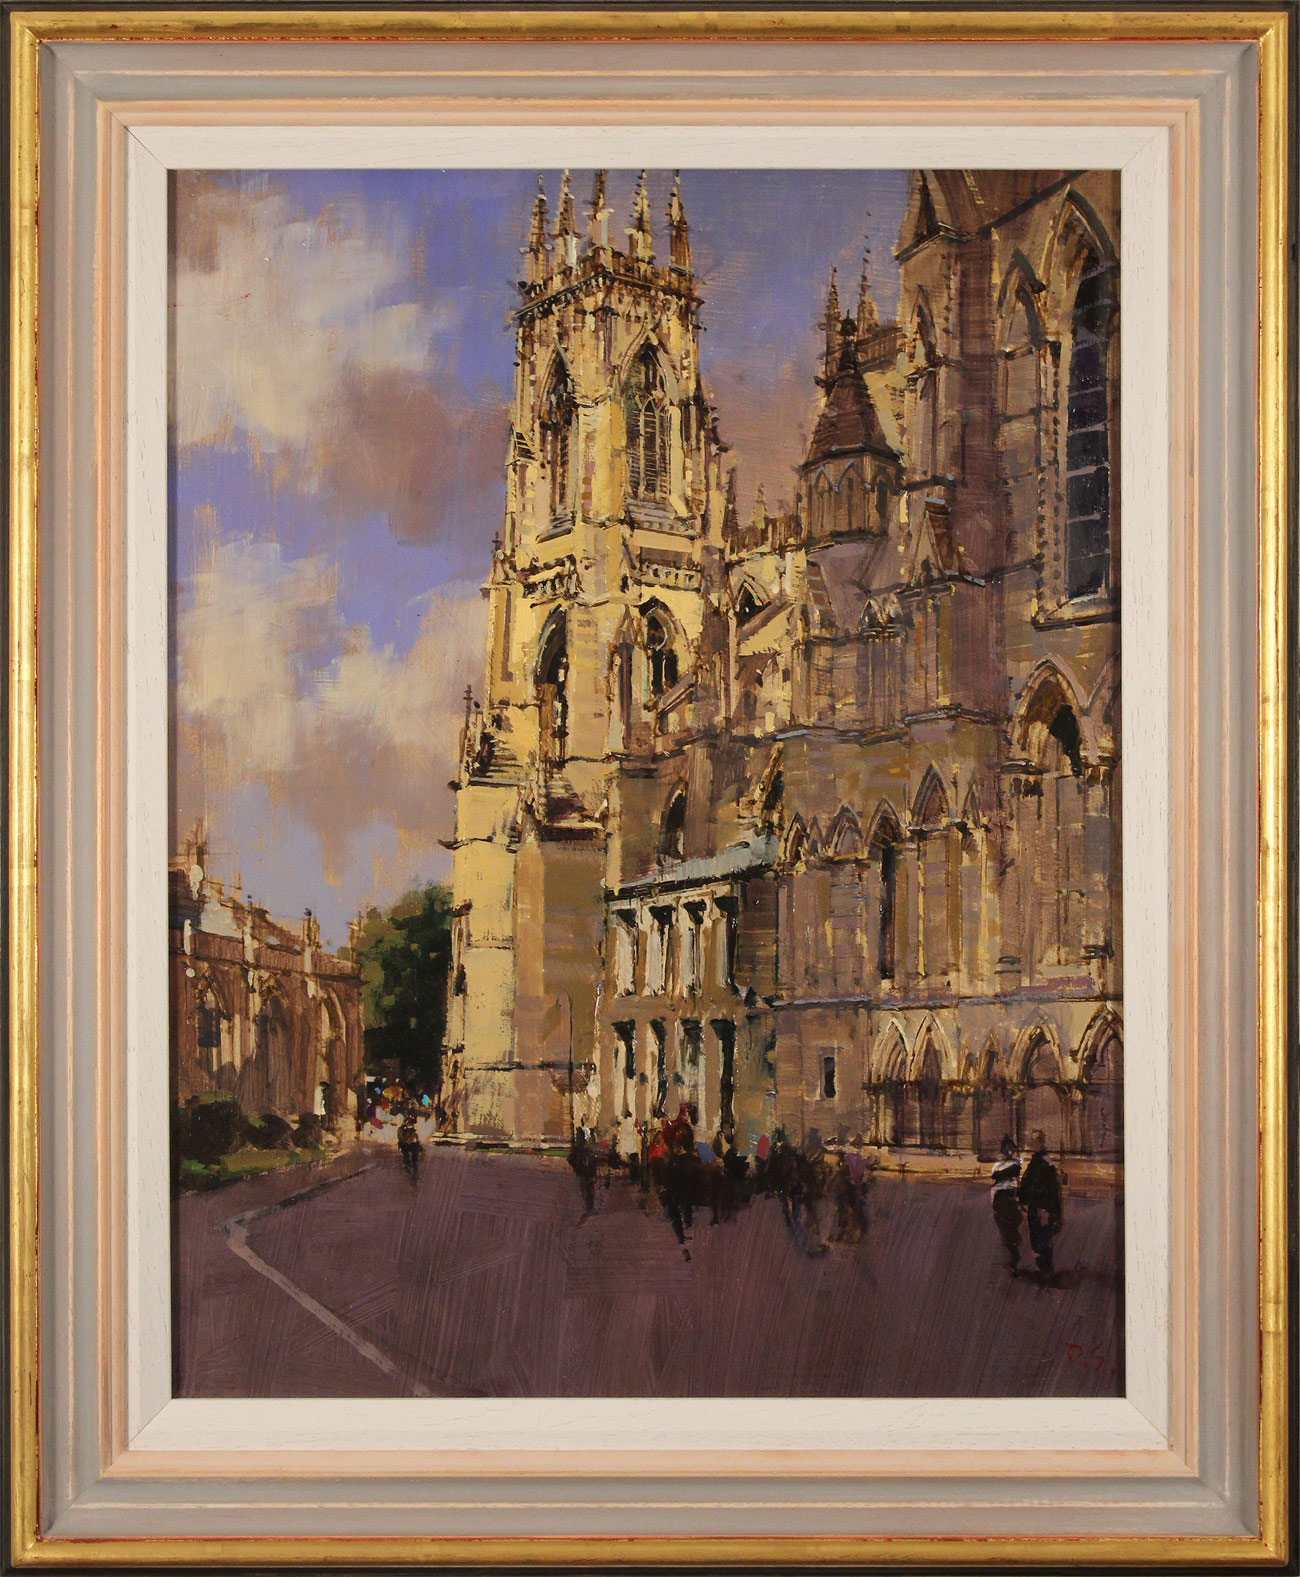 David Sawyer, RBA, Original oil painting on panel, York Minster, View from the Southeast, click to enlarge